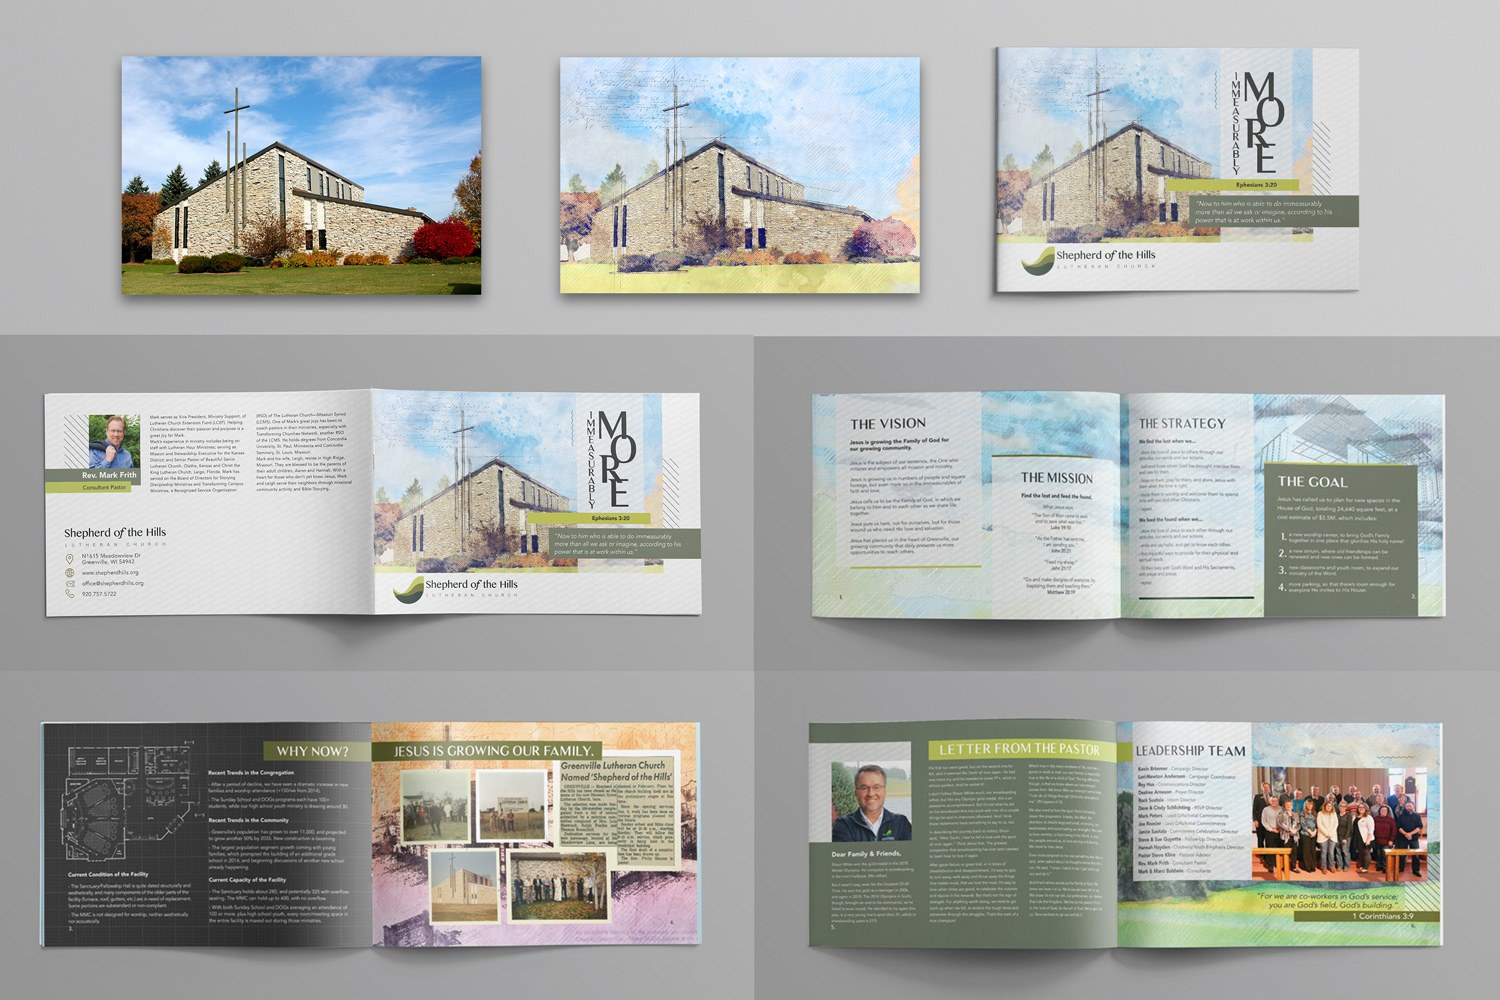 Church capital stewardship campaign brochure case statement multipage booklet design